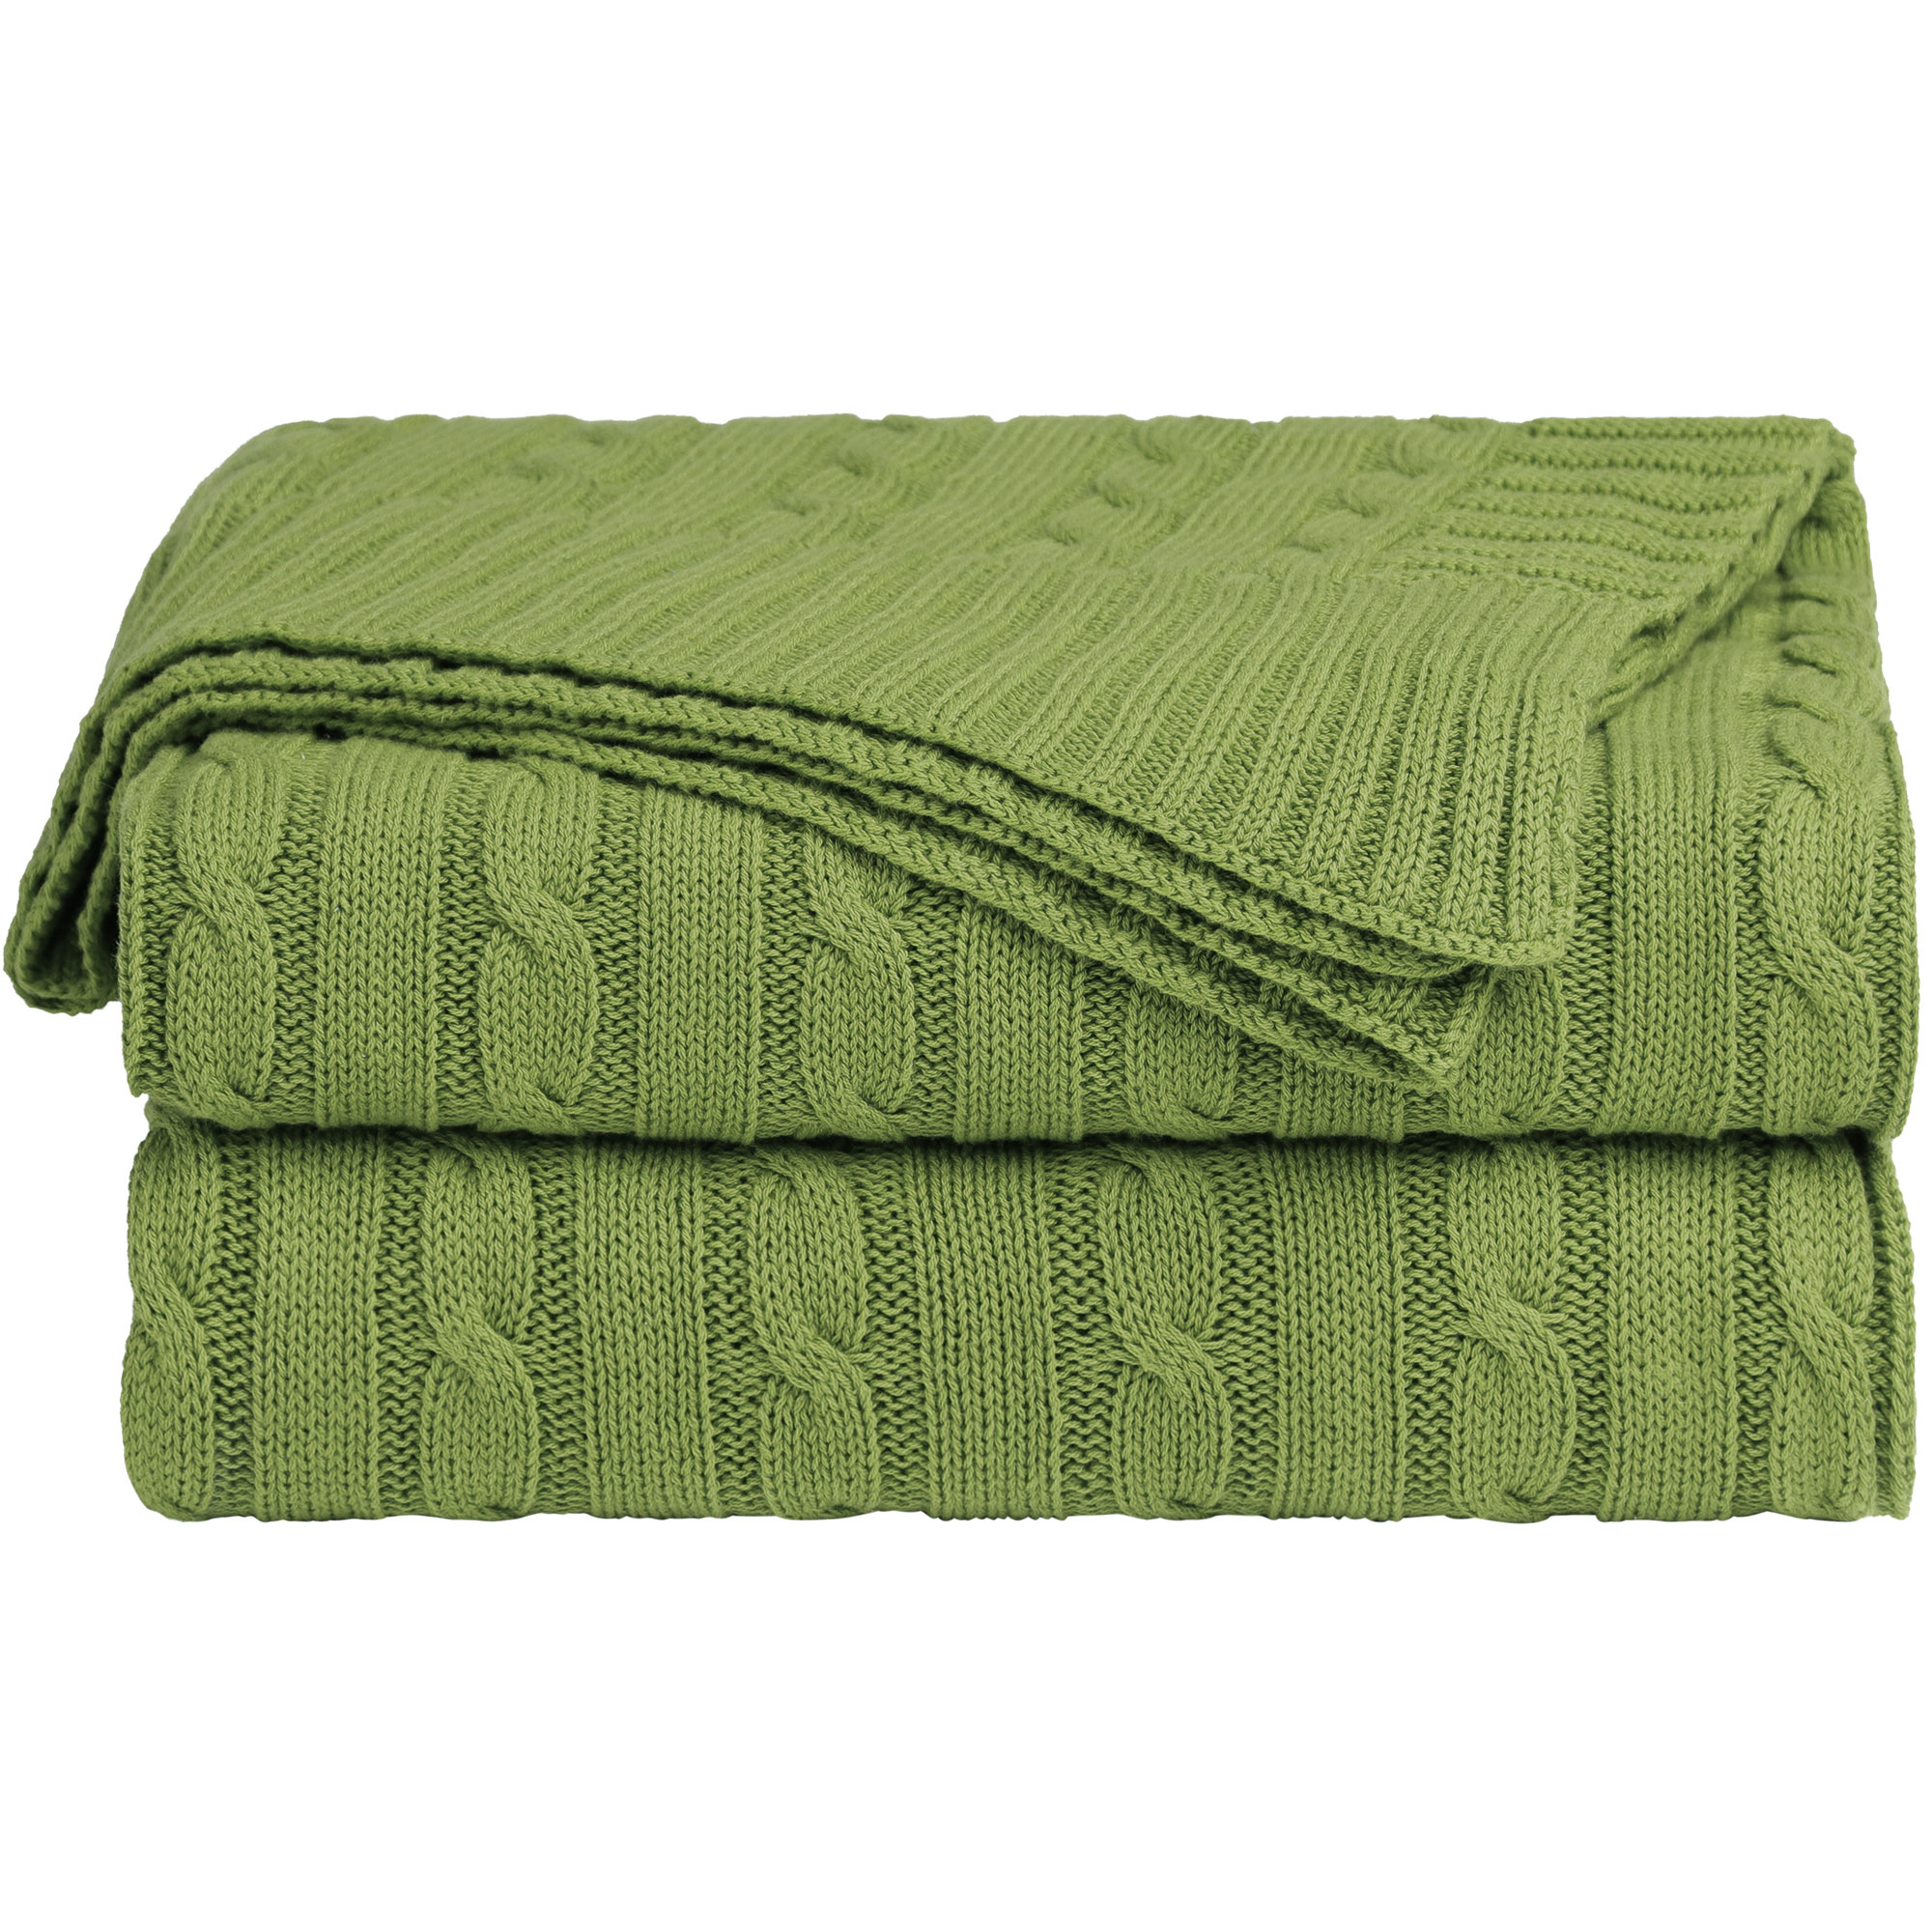 Home Decor 100% Cotton Soft Cable Knit Throw Blanket Green